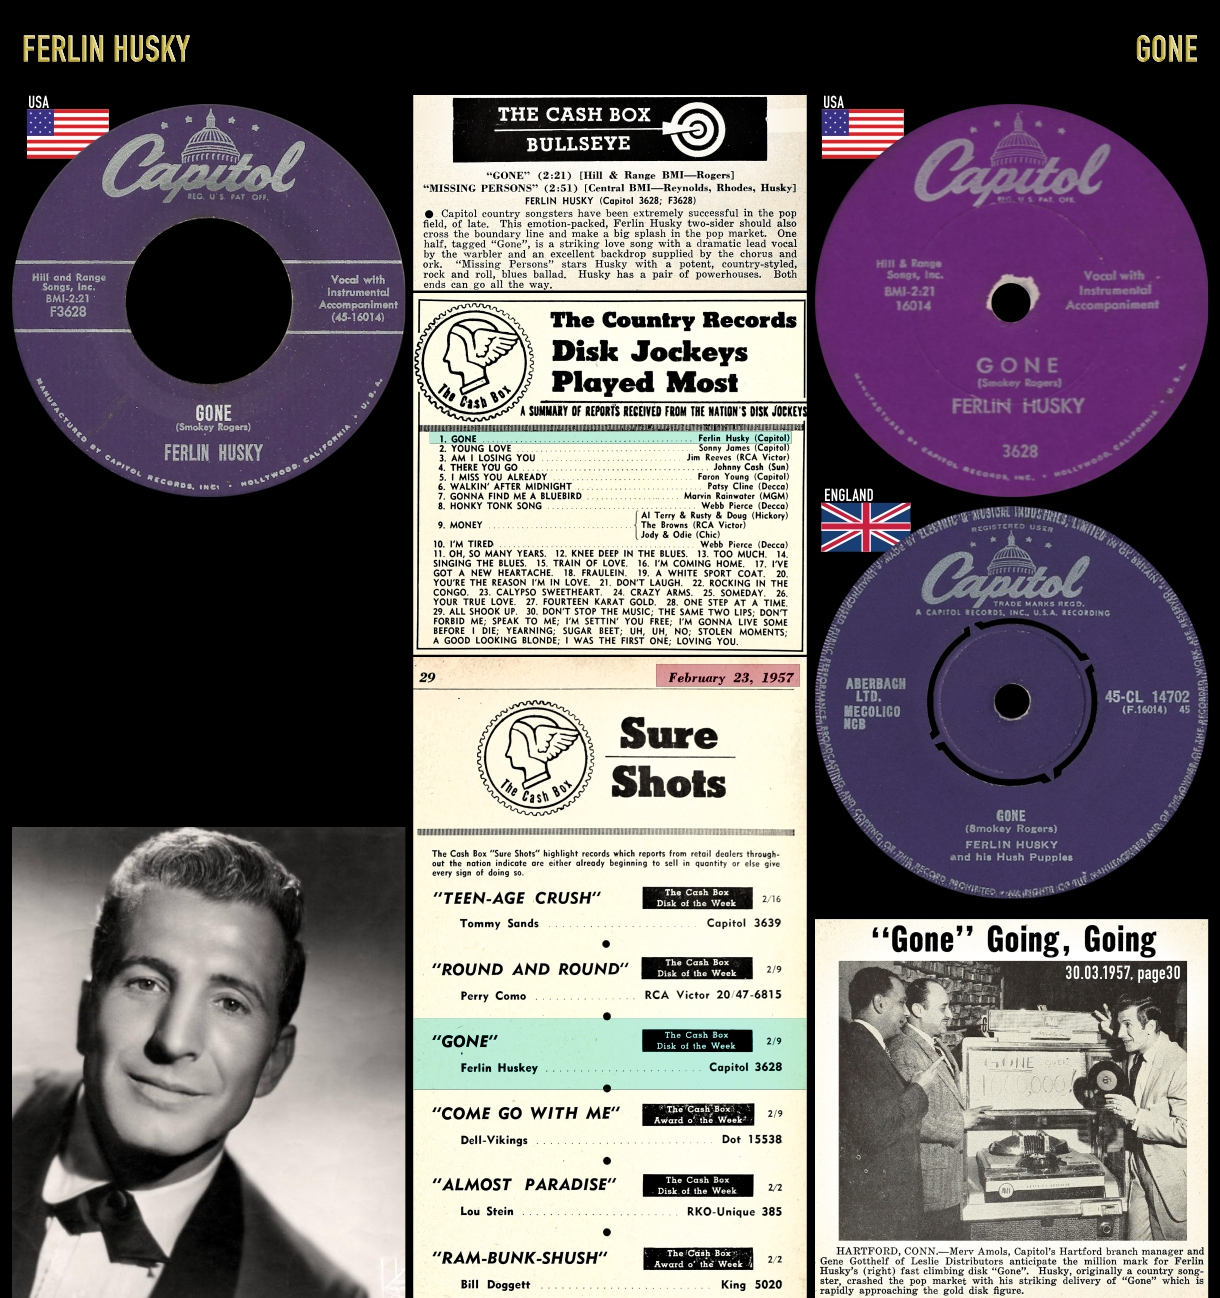 570302_Ferlin Husky_Gone